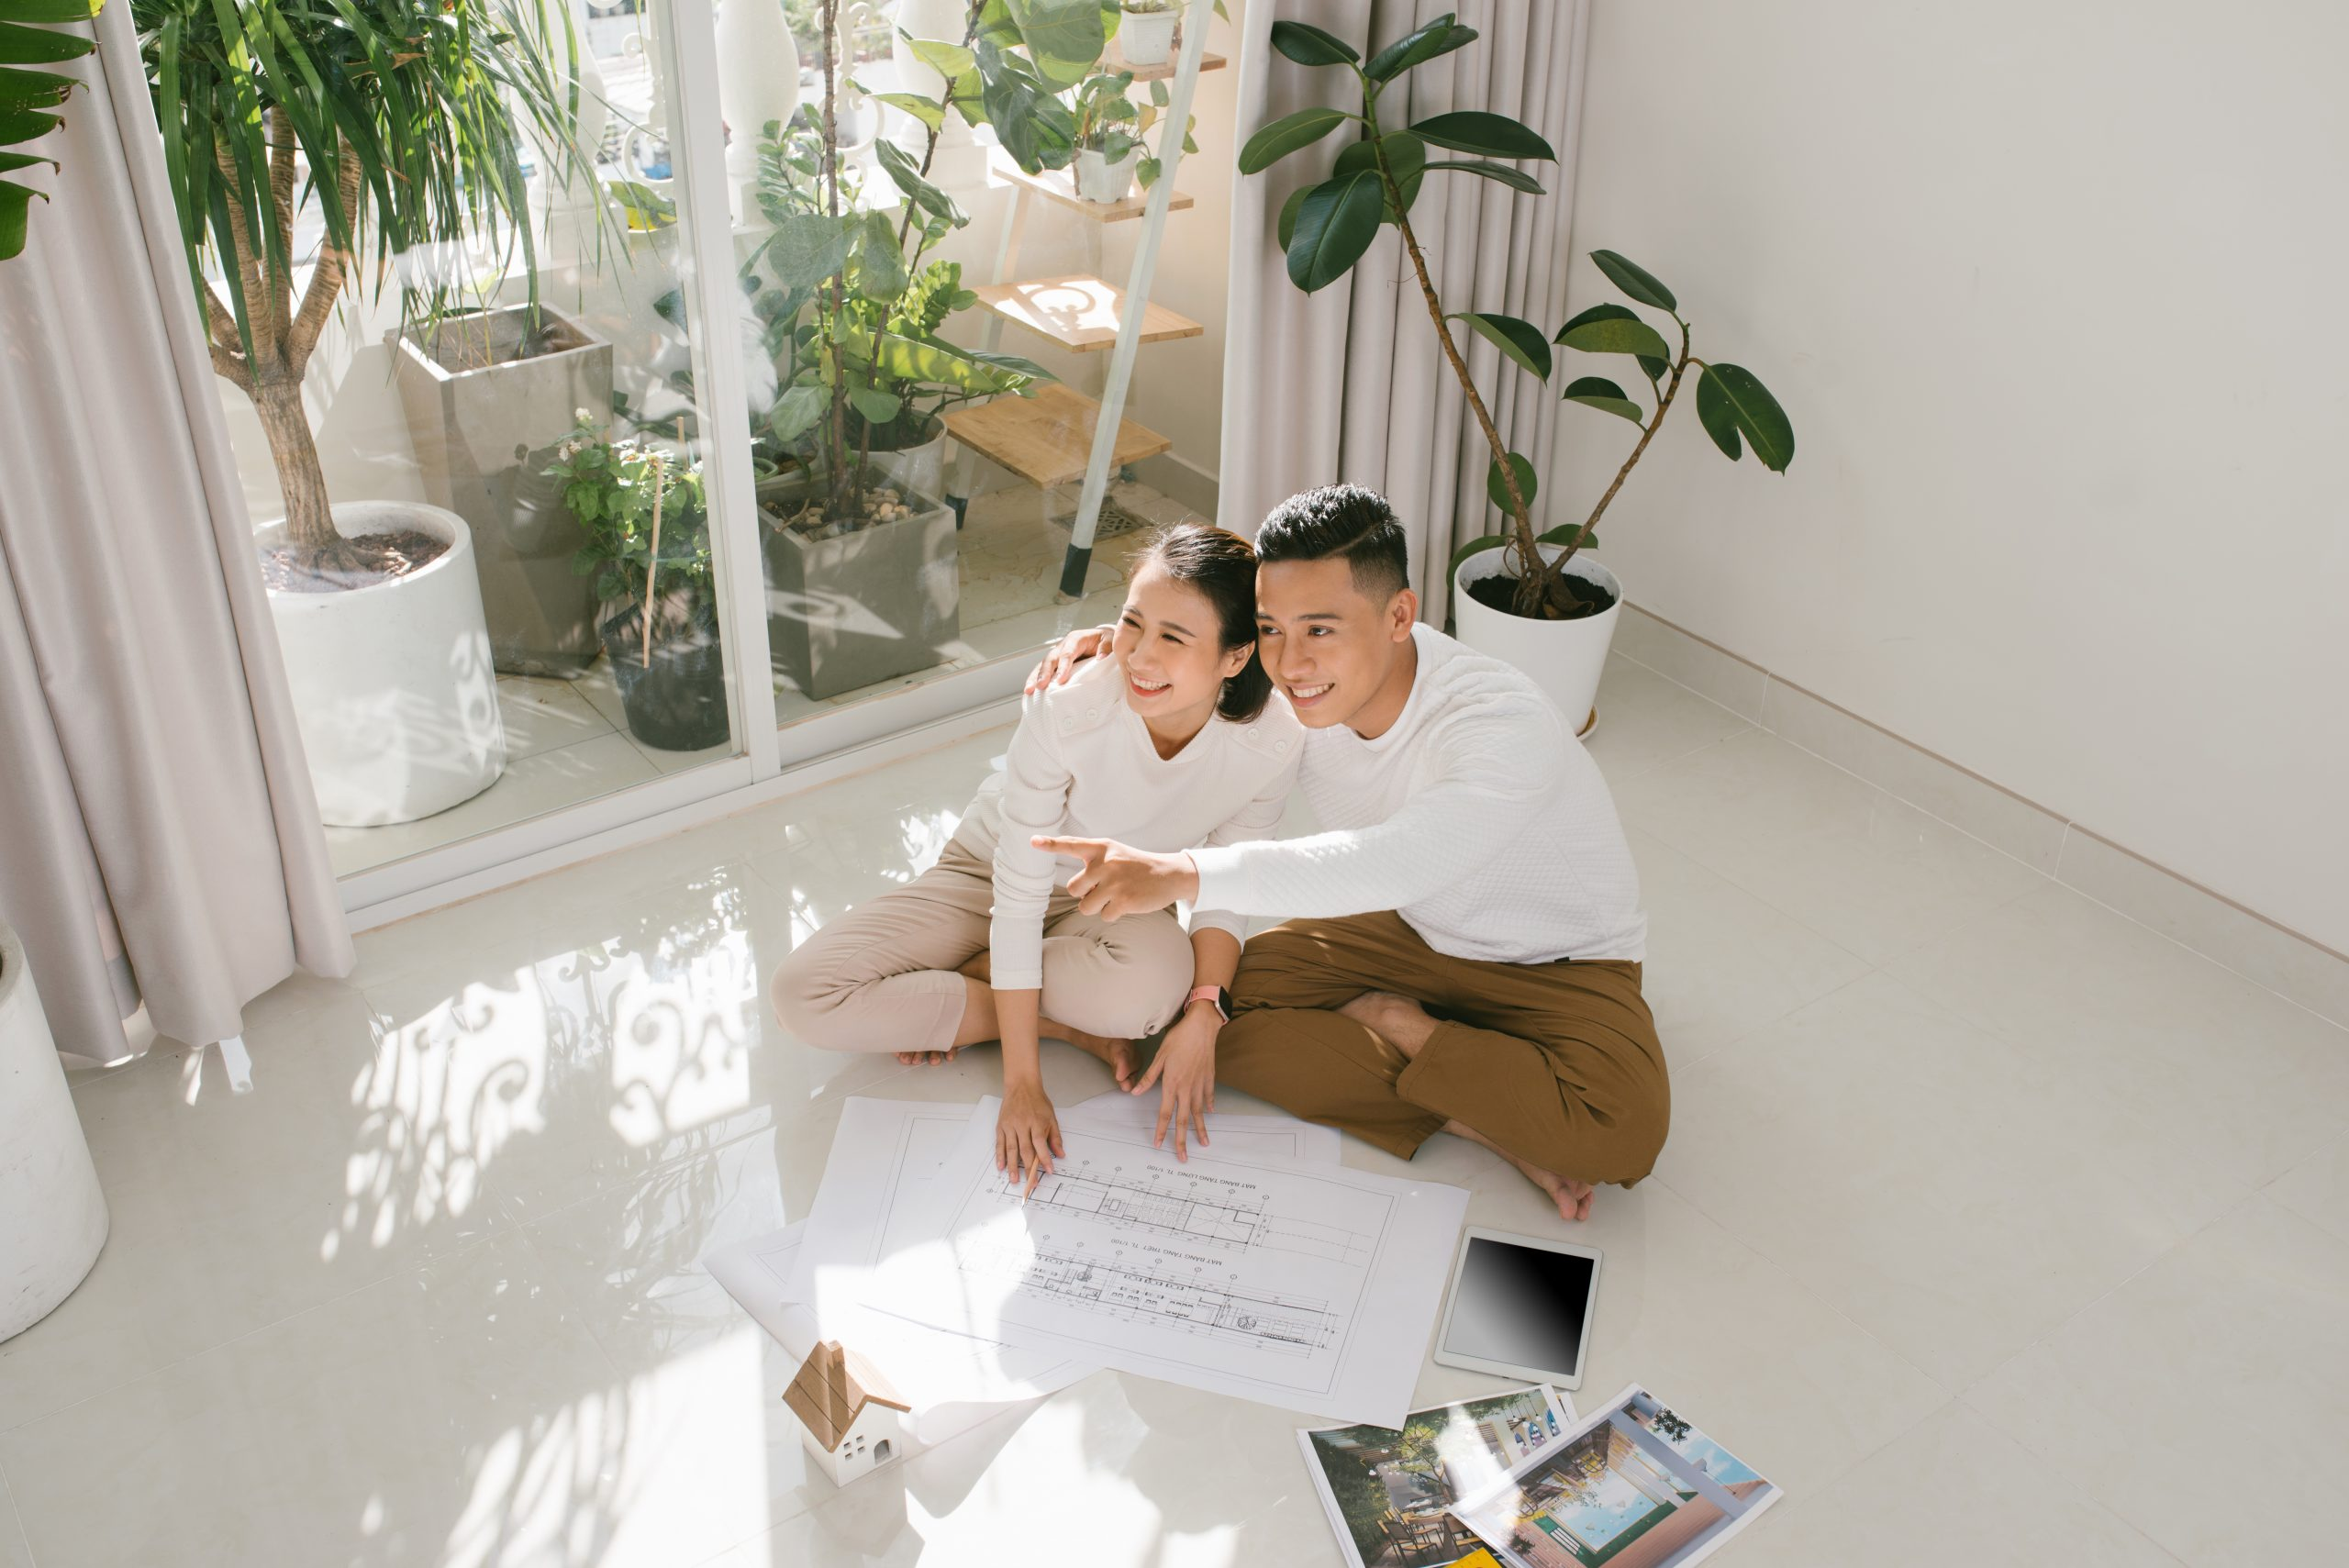 What to Do When You and Your Partner Can't Decide on One Home Layout